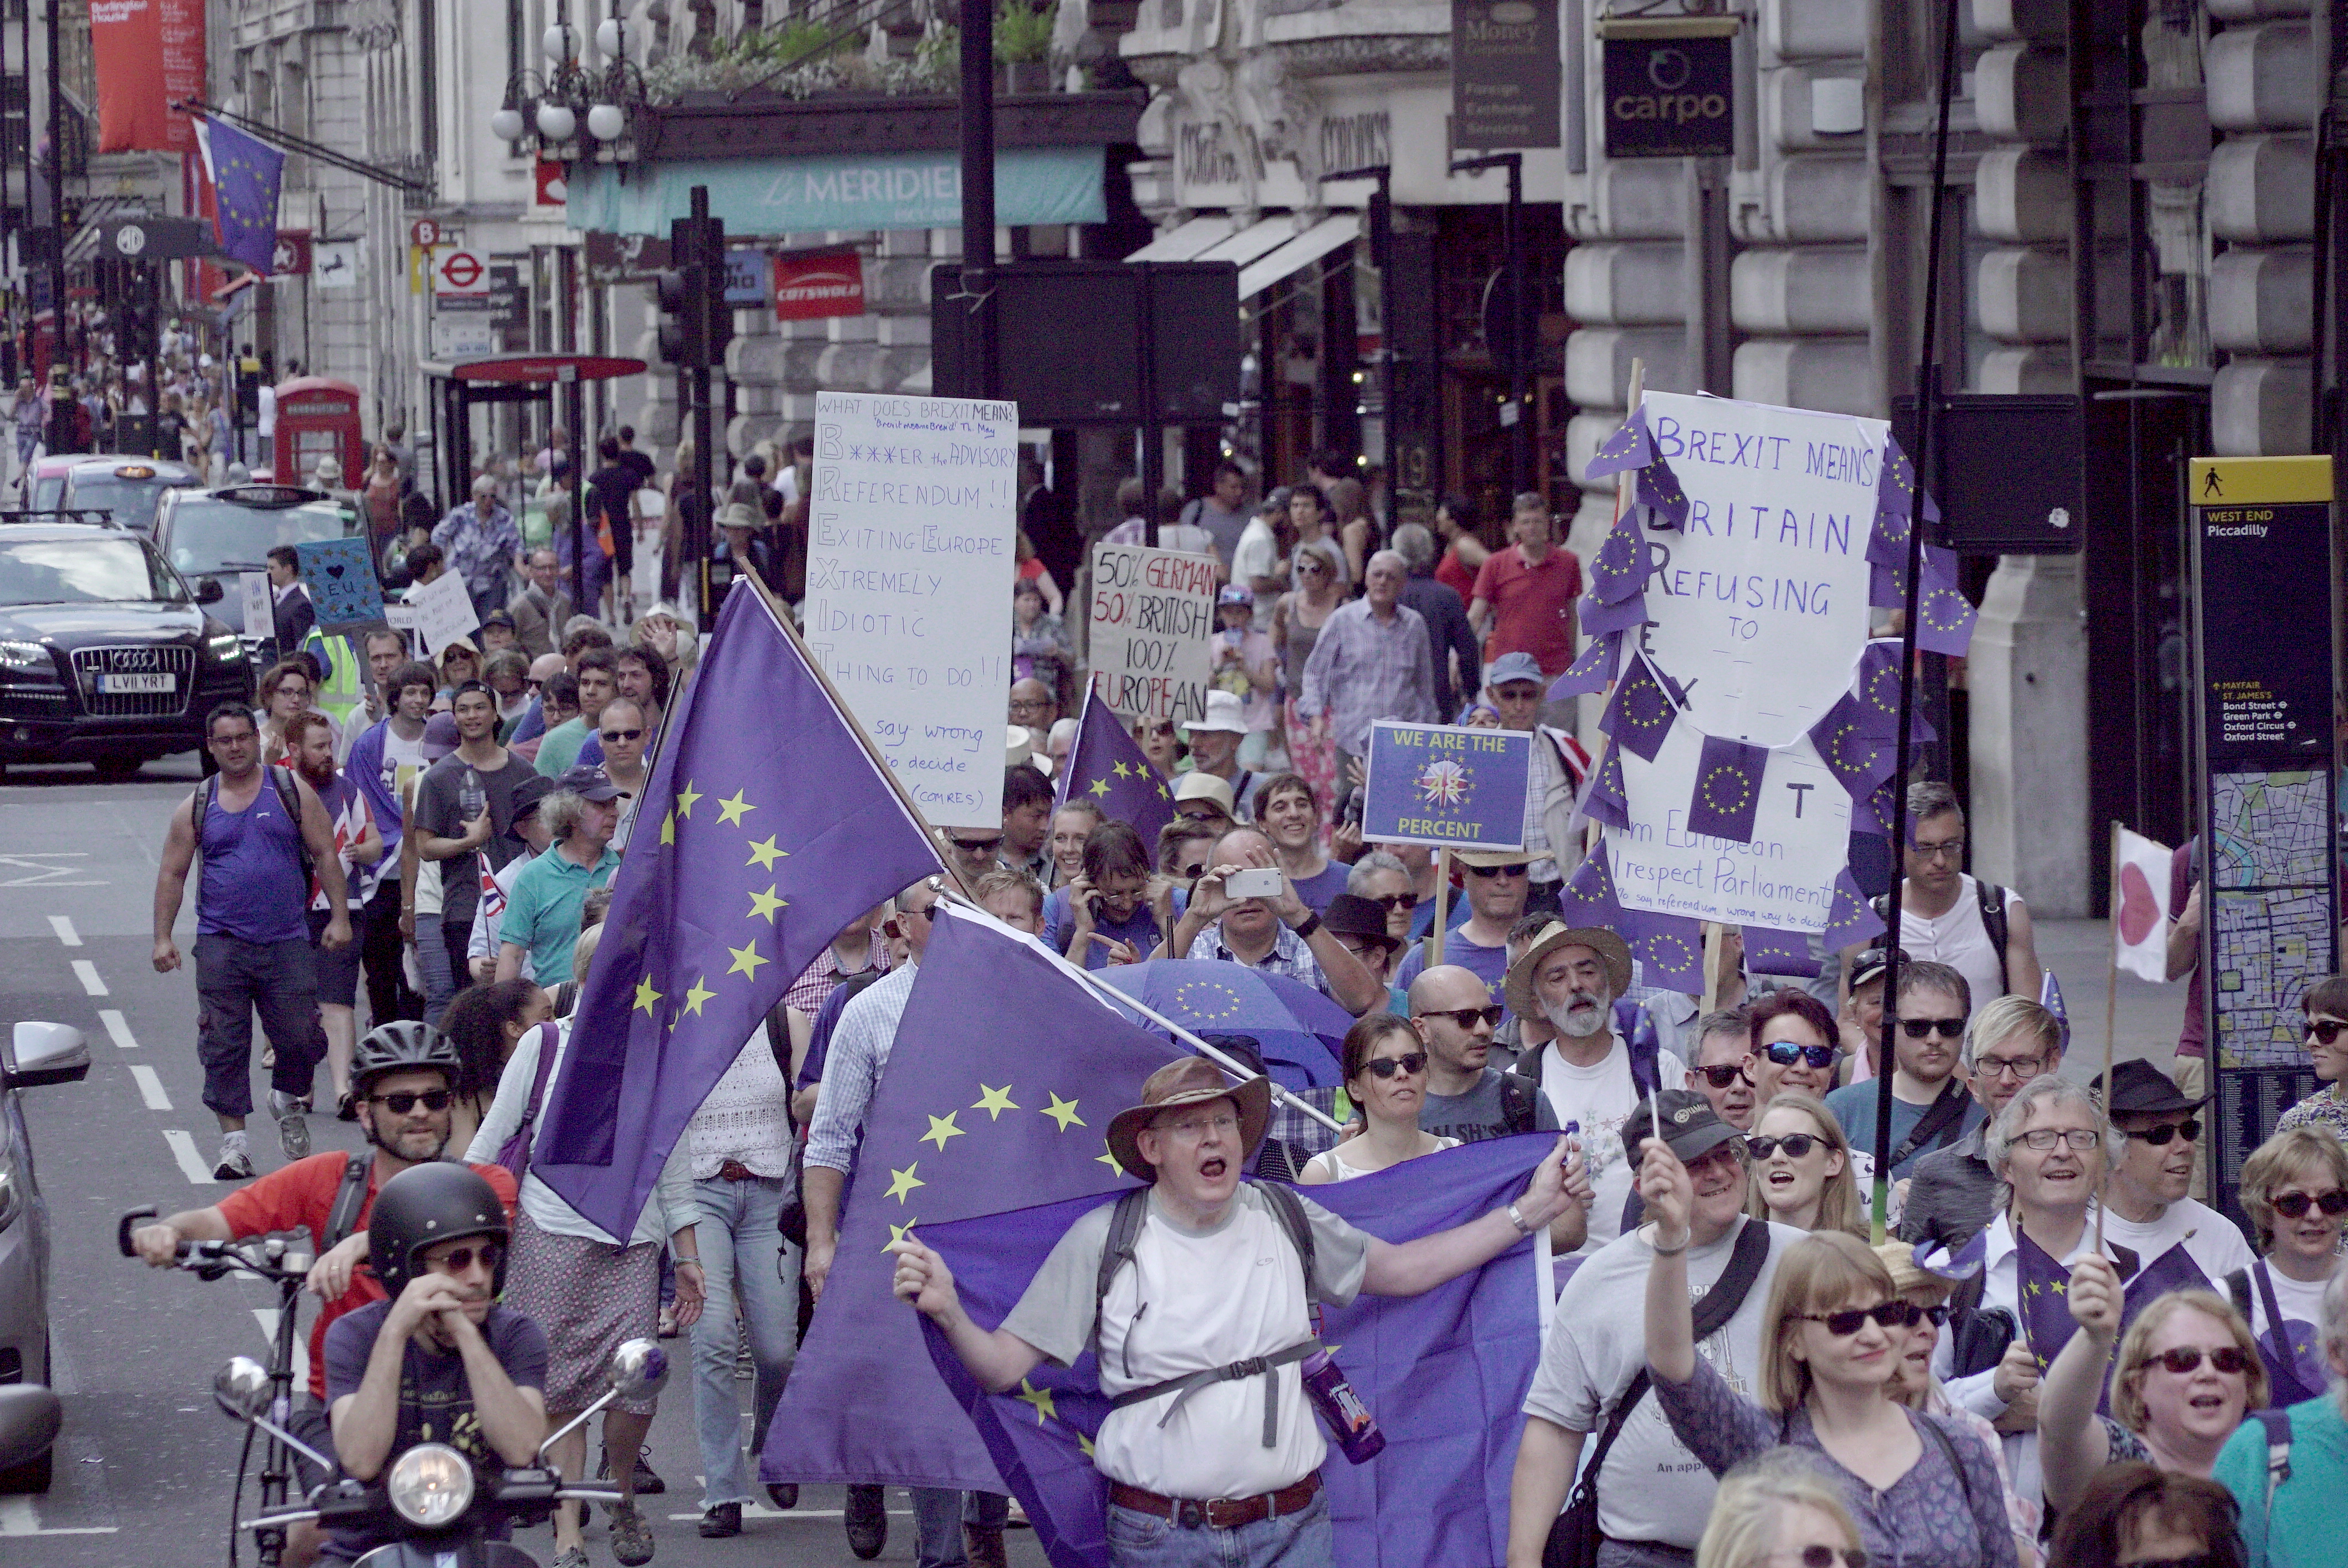 Move for Europe demonstration in London